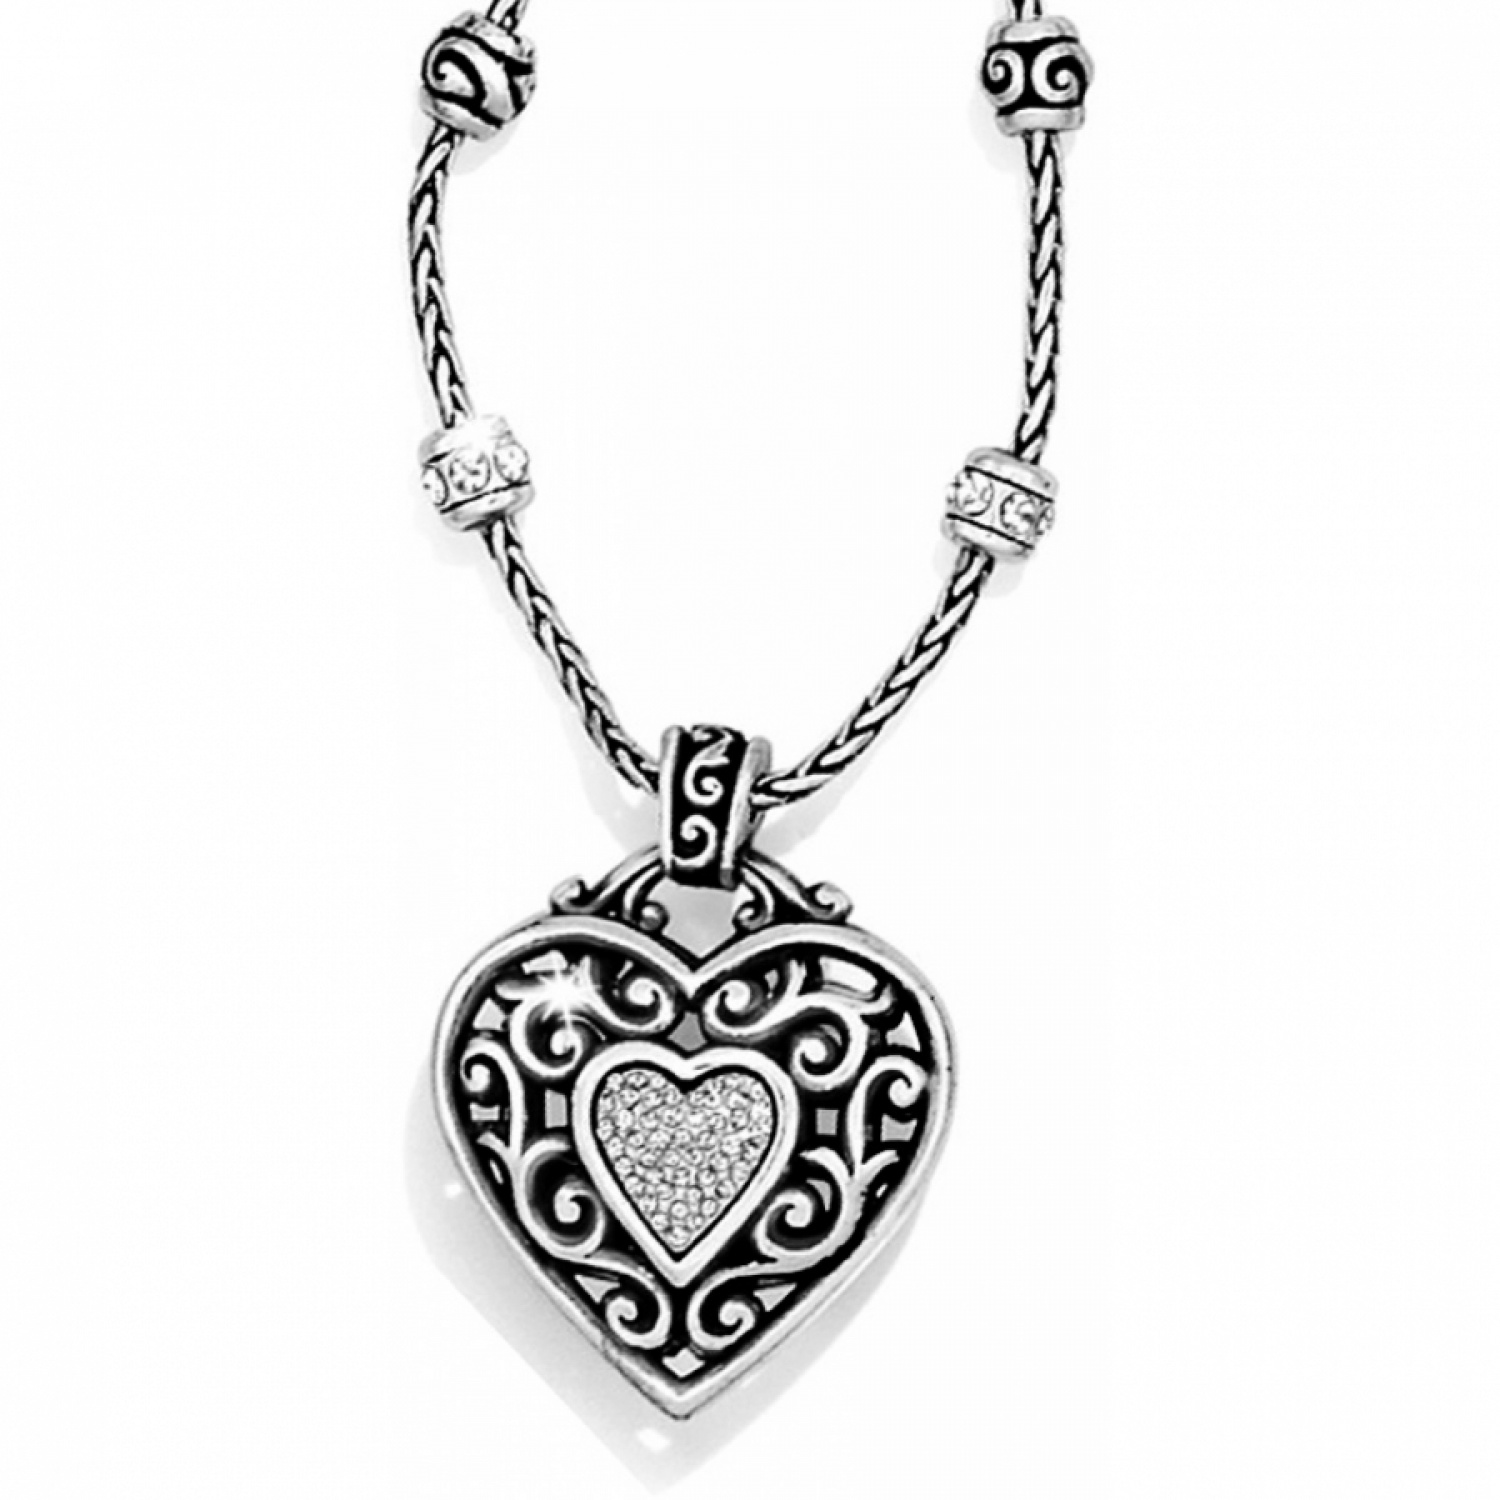 reno heart reno heart necklace hvmrrwq